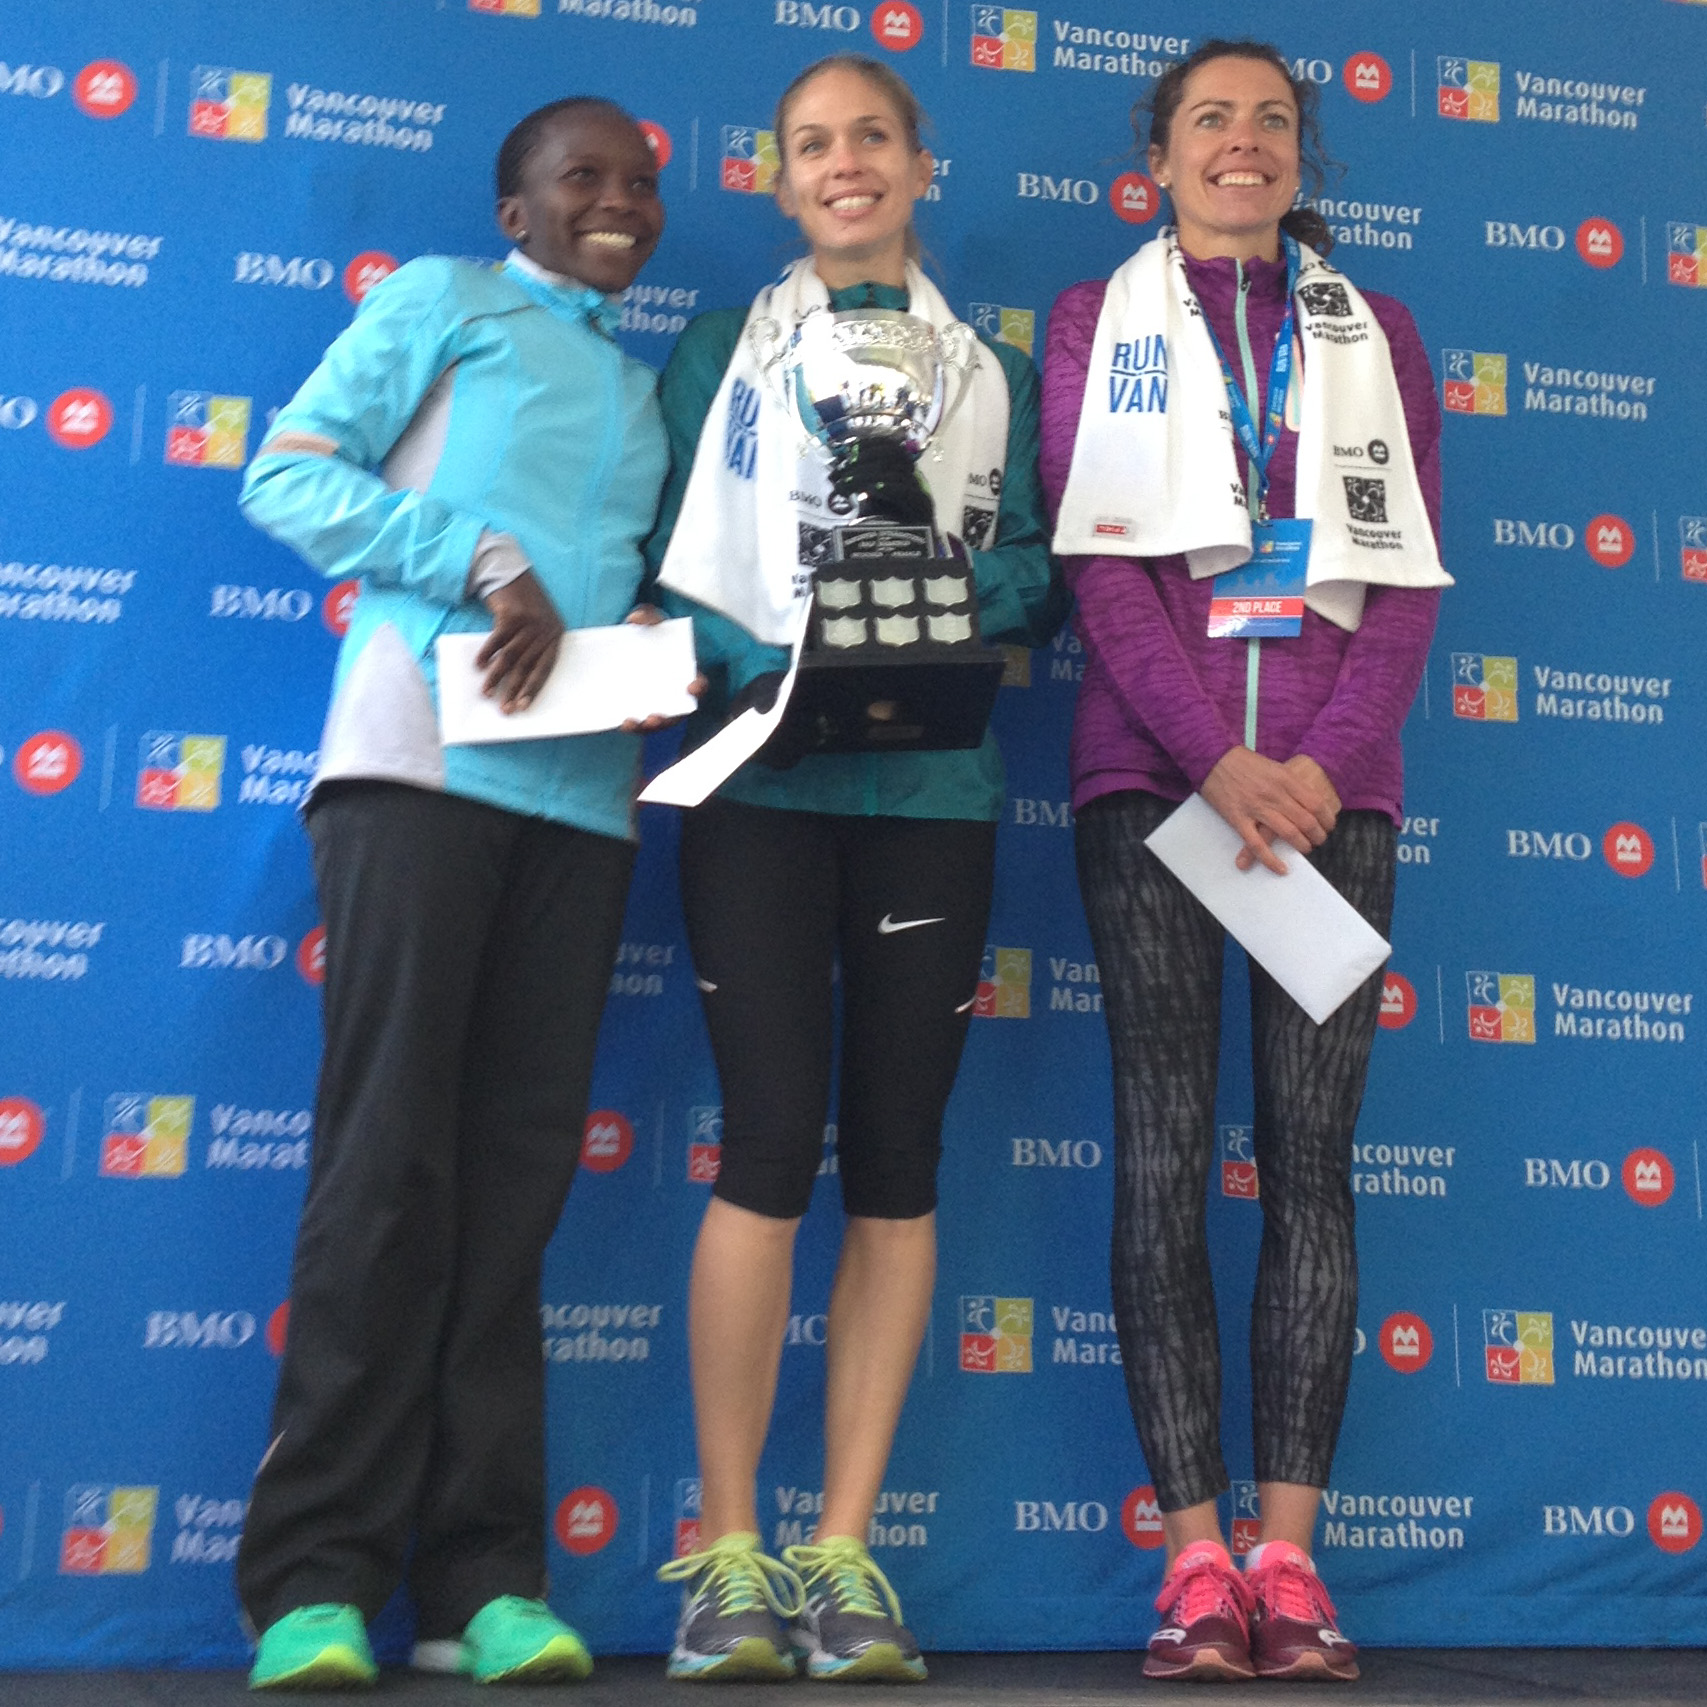 Jane Murage (3rd), Natasha Kodak (1st) and Emily Setlack (2nd)